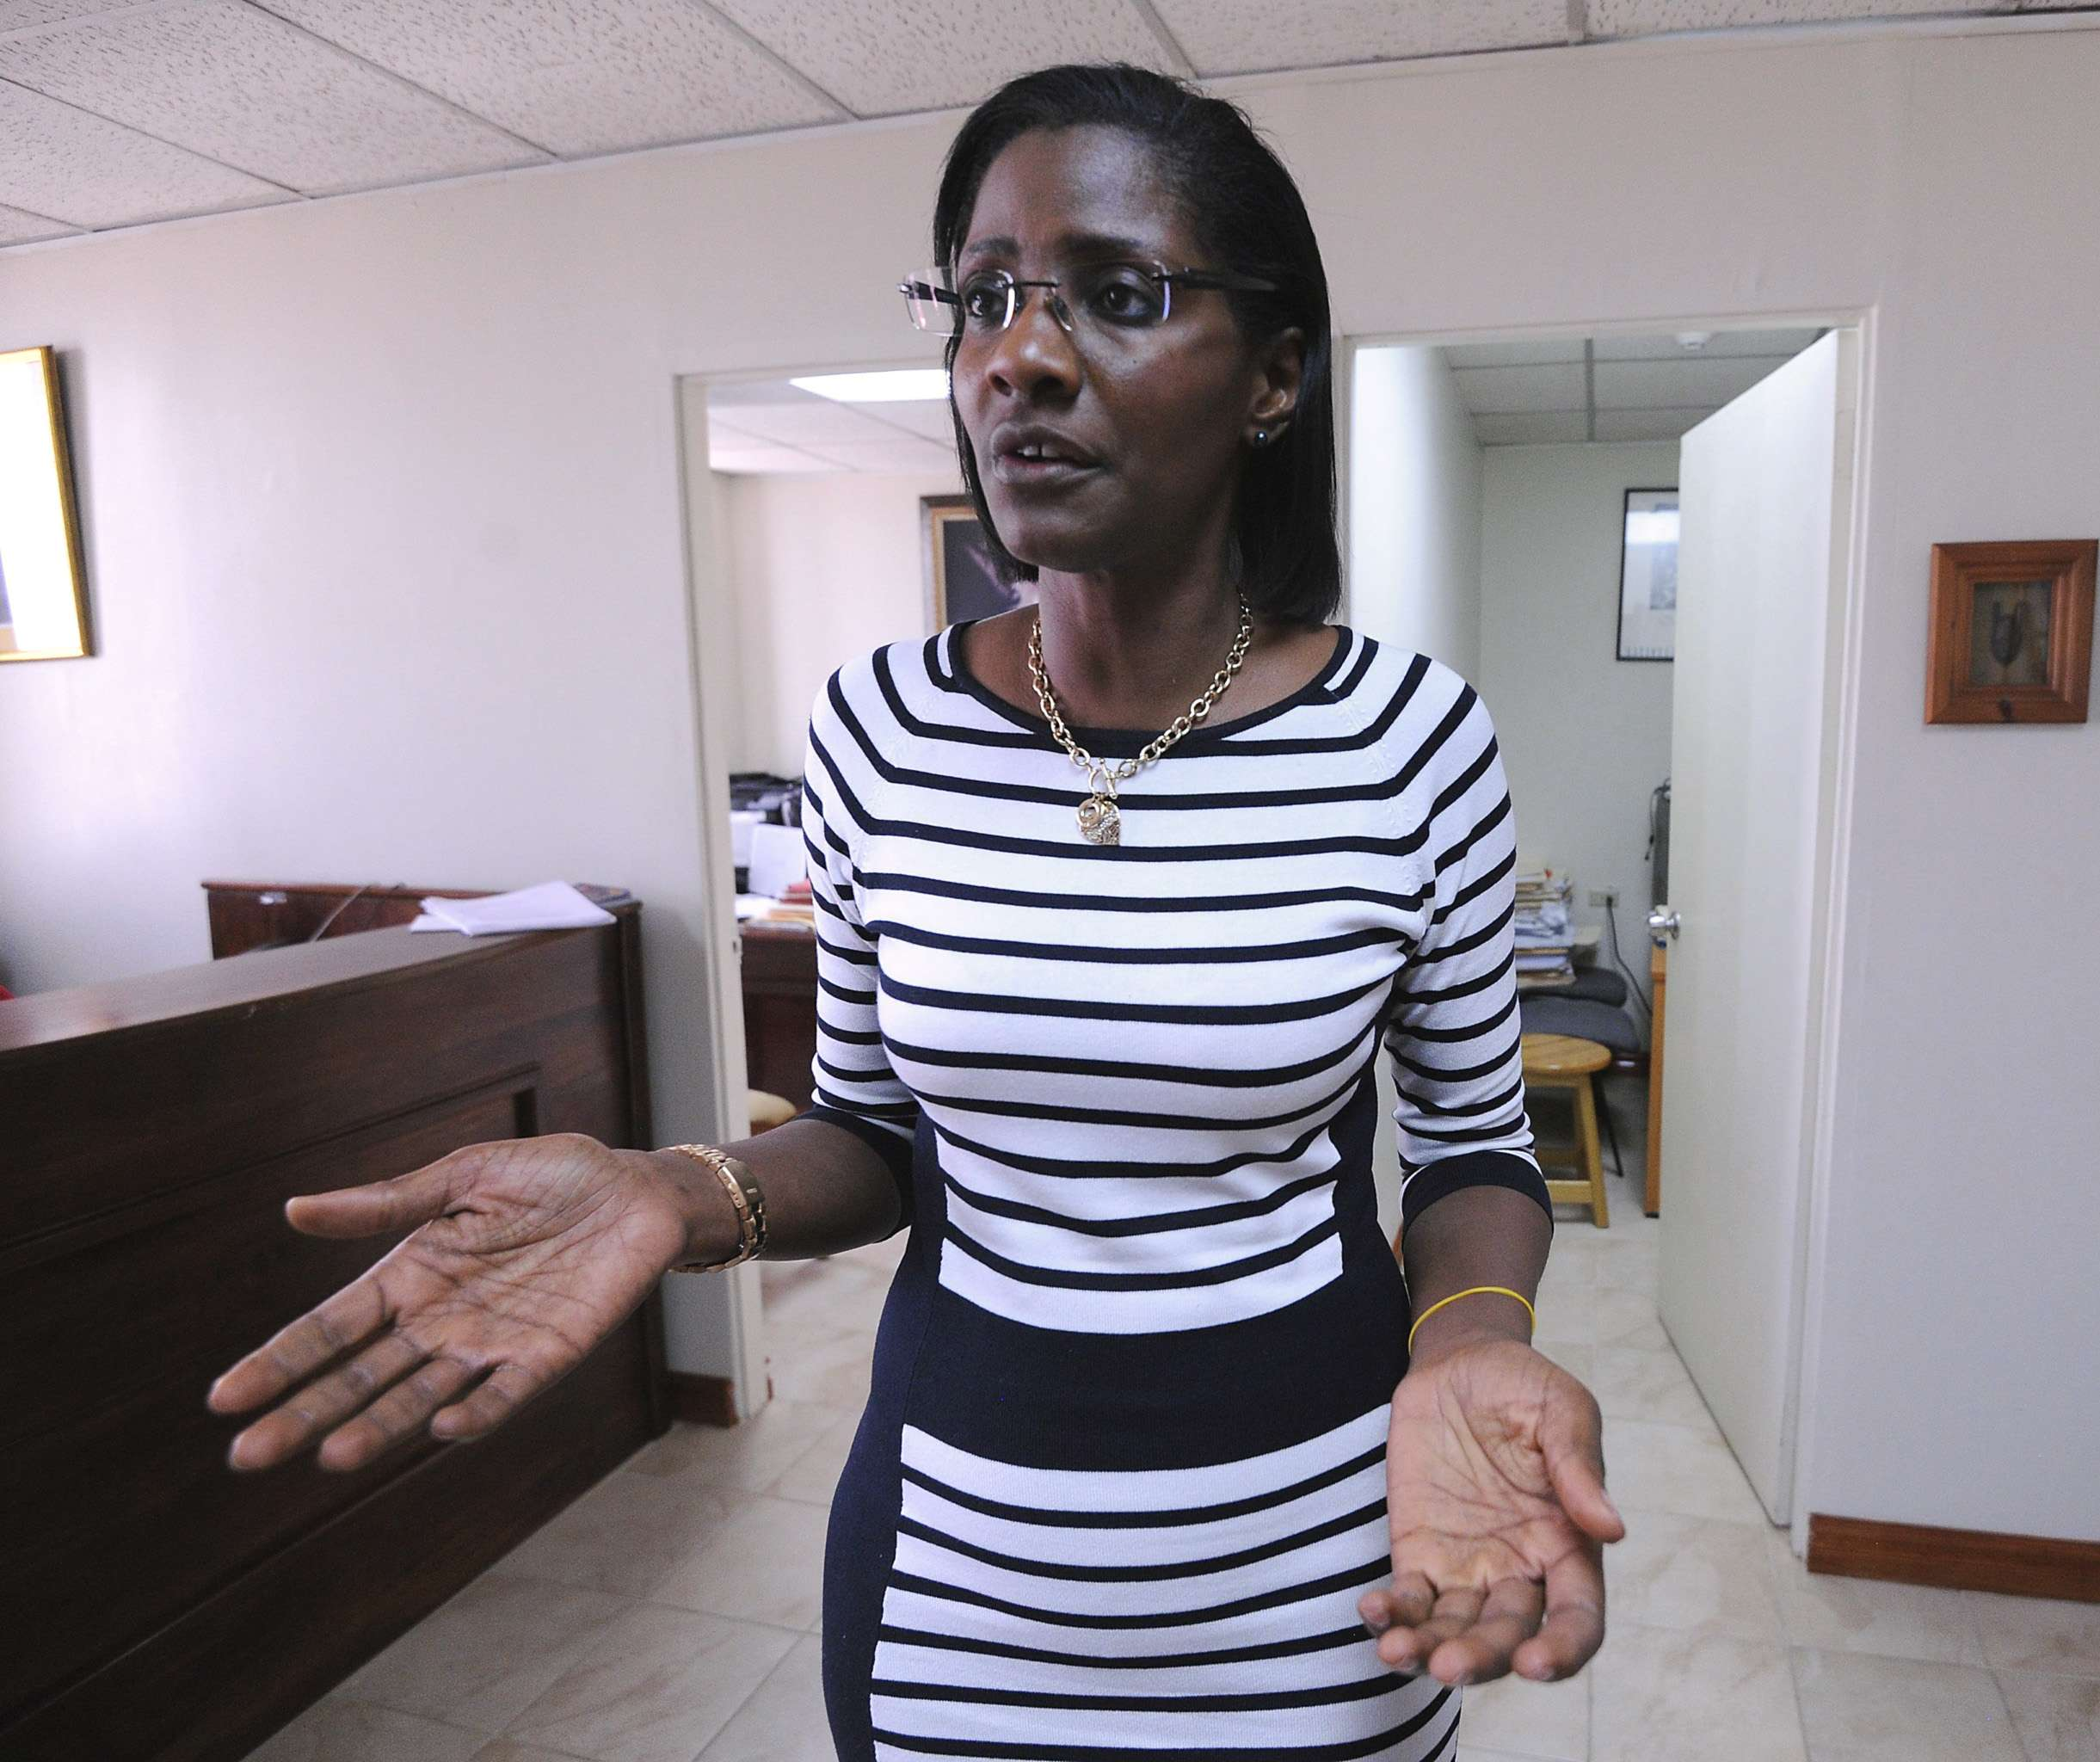 Immigration Attorney Selected as PNP Caretaker for WR St Andrew